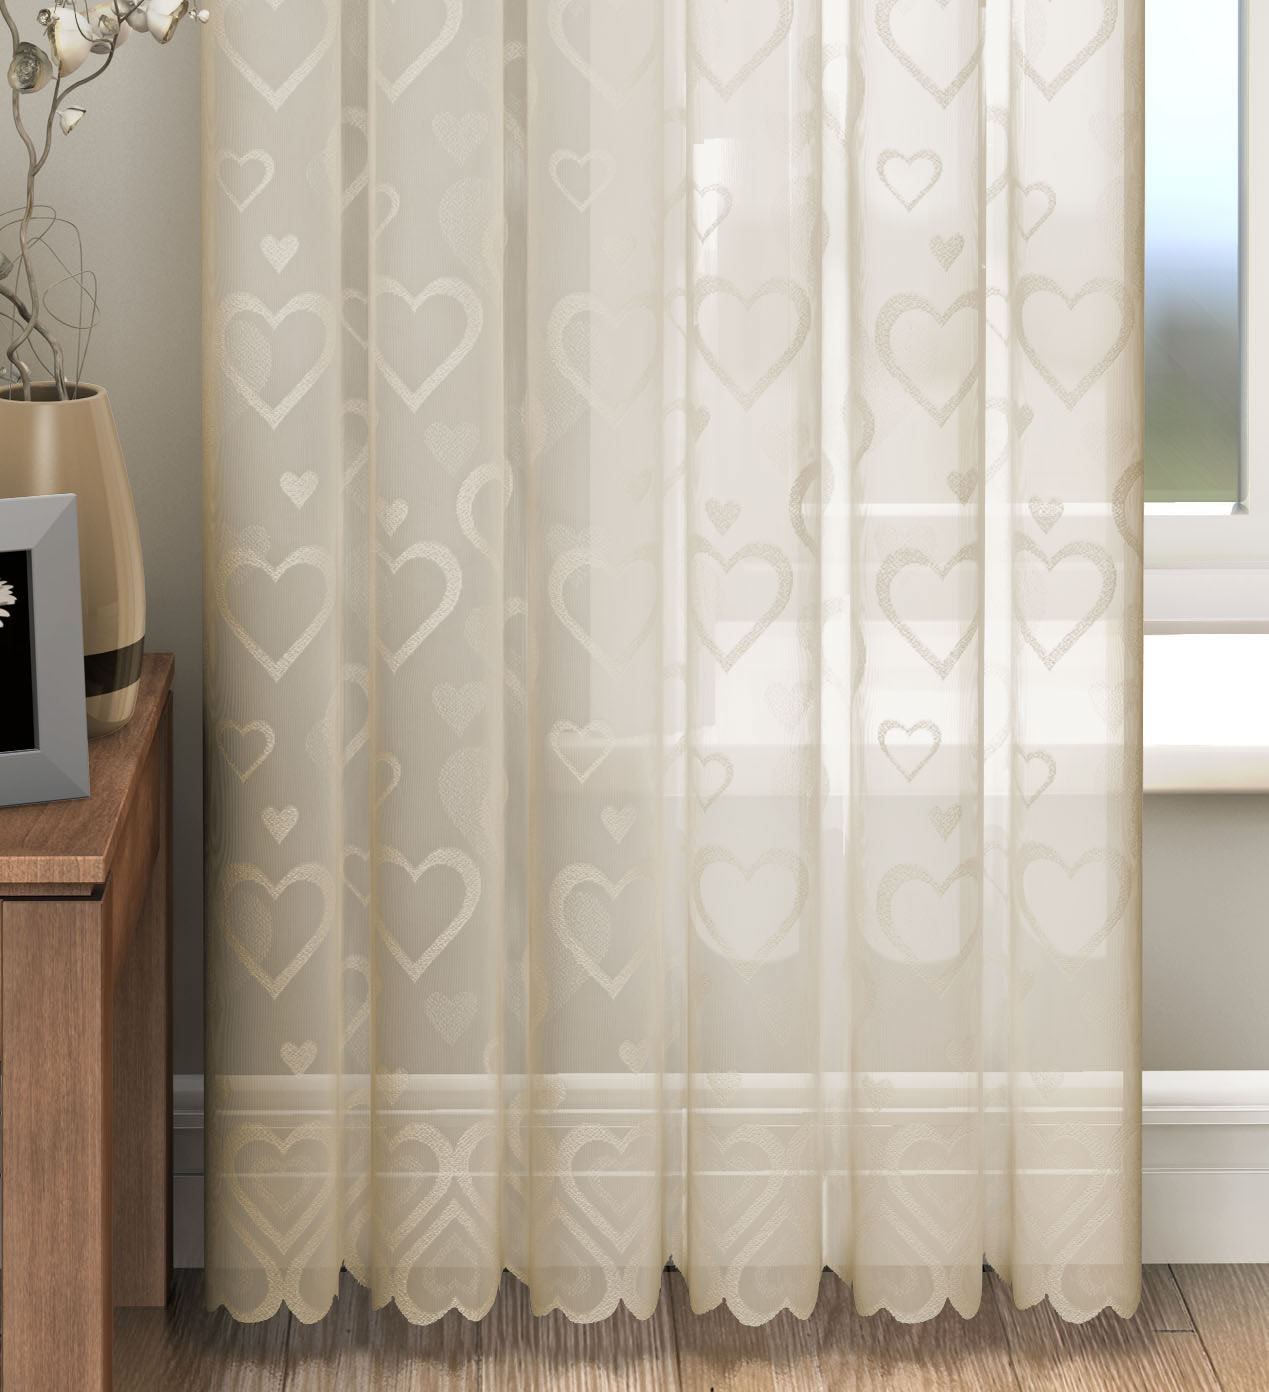 White Sheer Door Panel Curtains Love Hearts Lace Slot Top Sheer Voile Rod Pocket Window